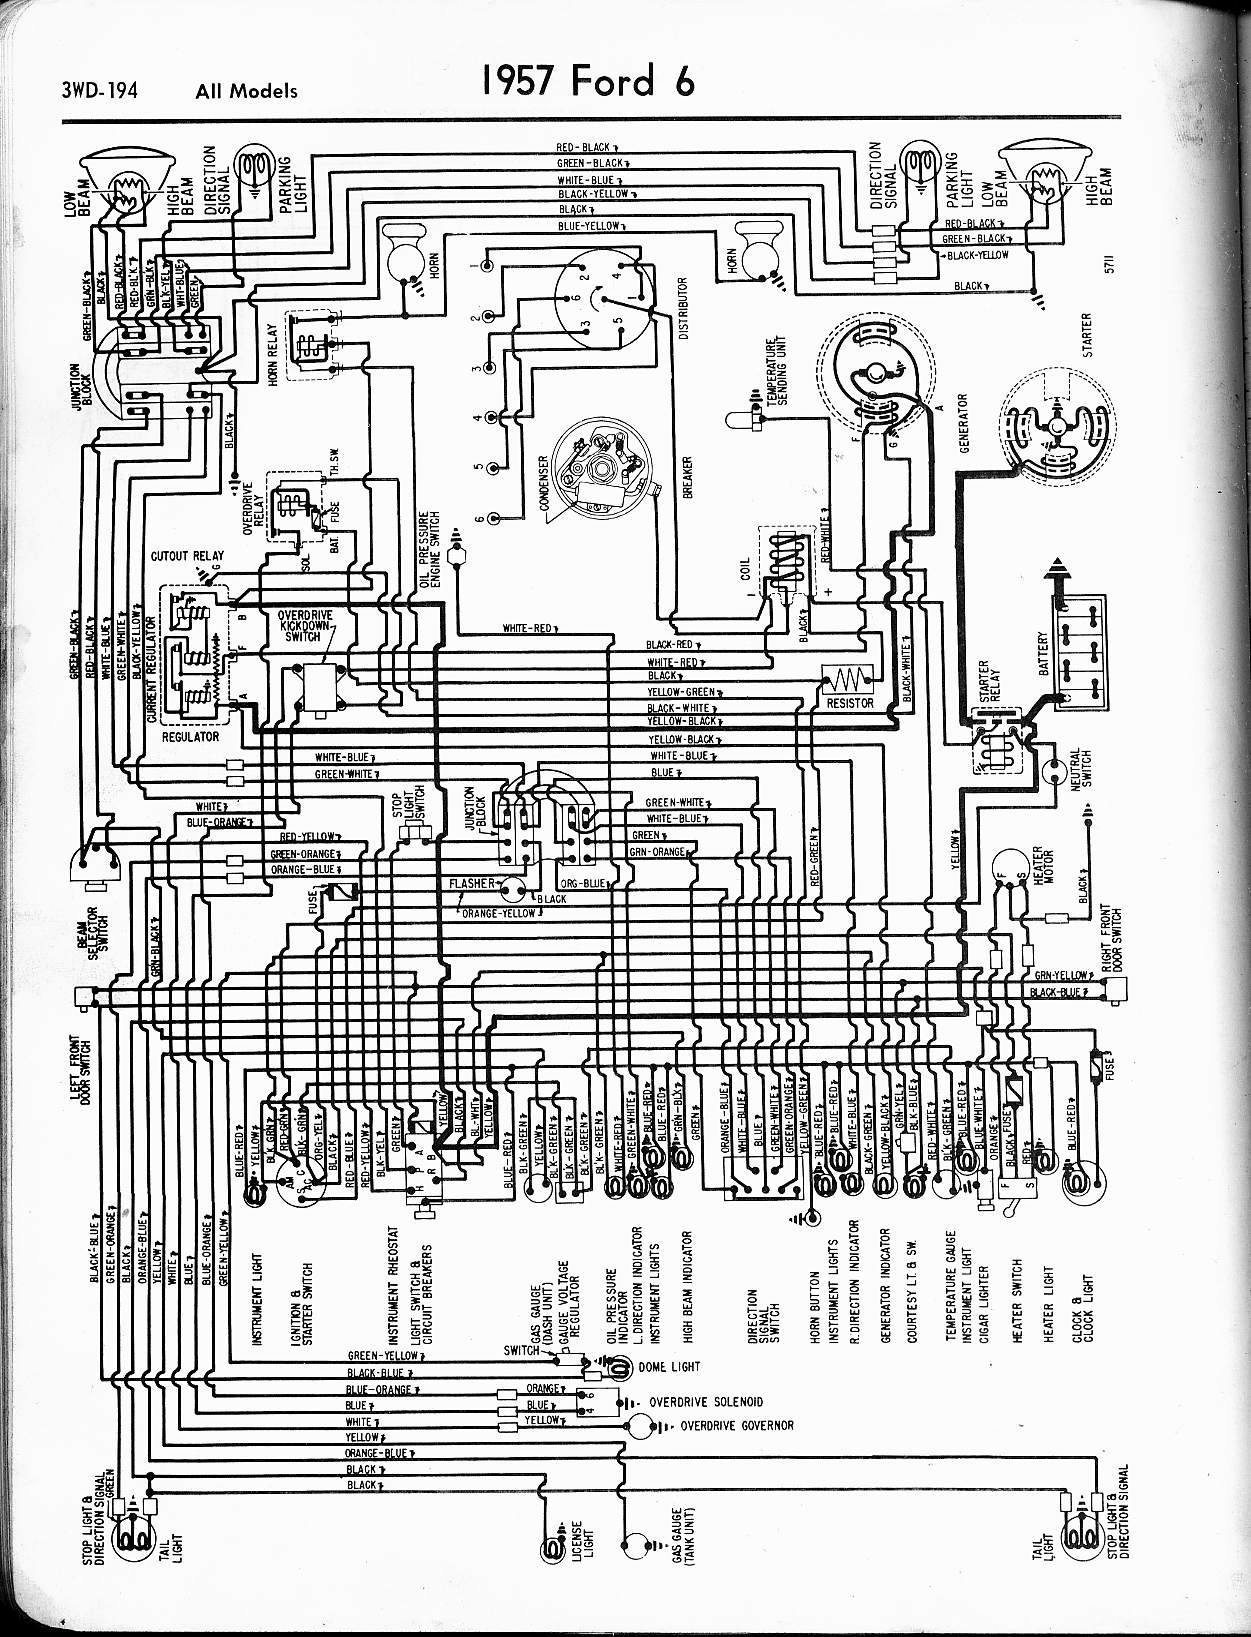 57_ford_wiring 1983 ford f100 wiring diagram wiring diagram simonand f100 wiring diagram at virtualis.co